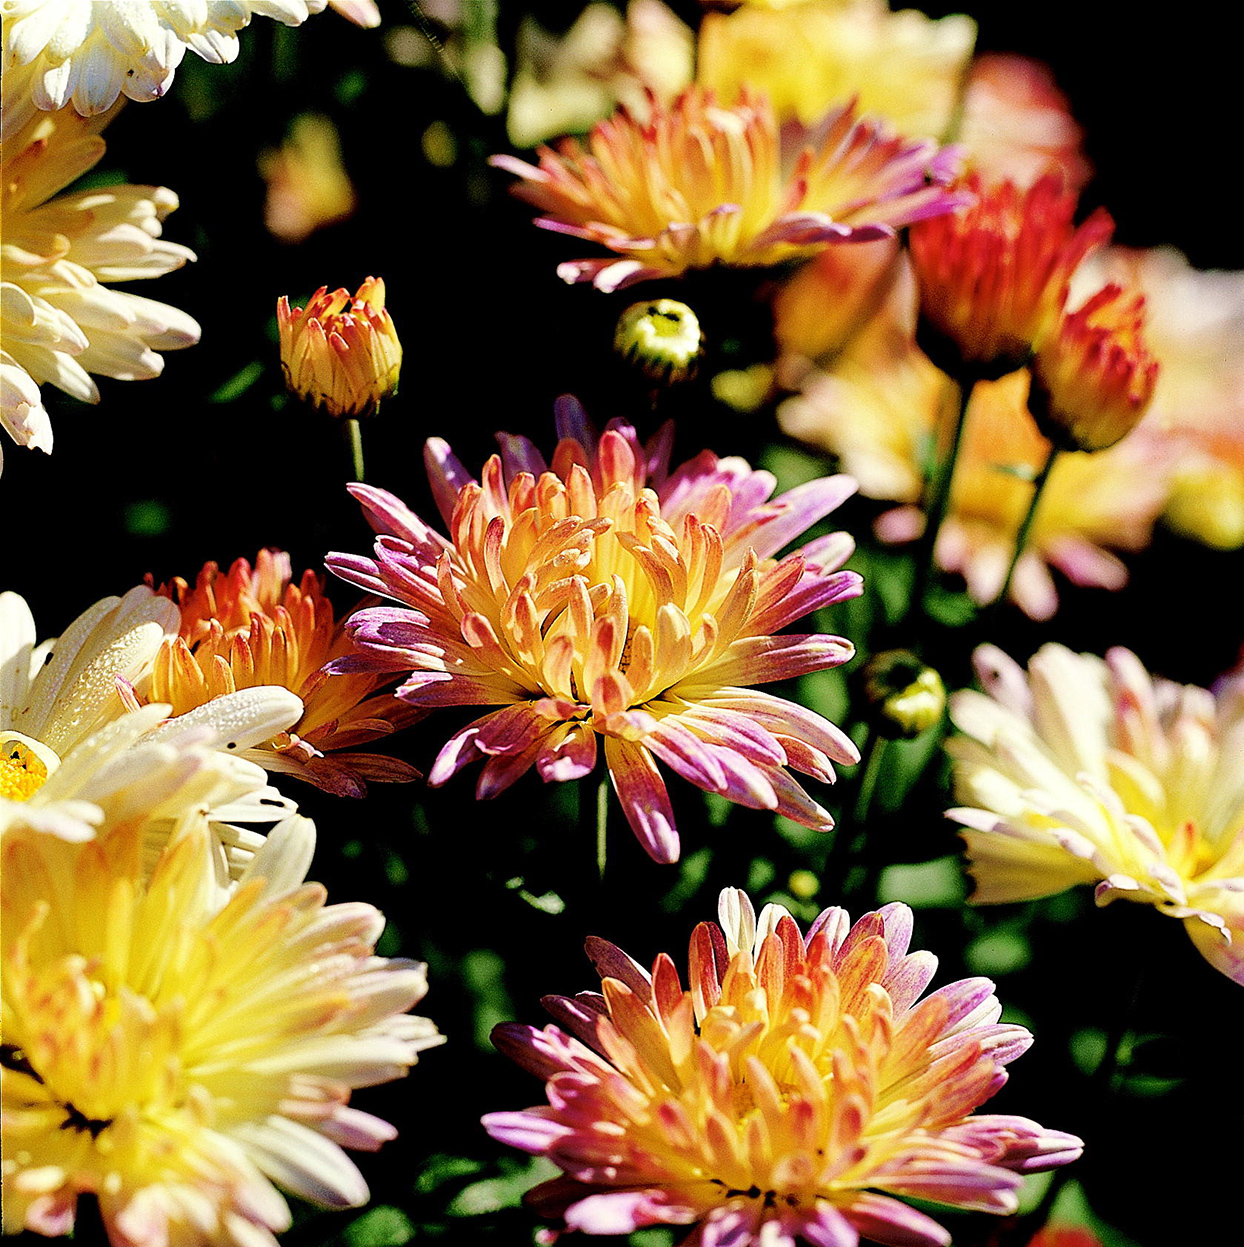 'Marilyn' chrysanthemum